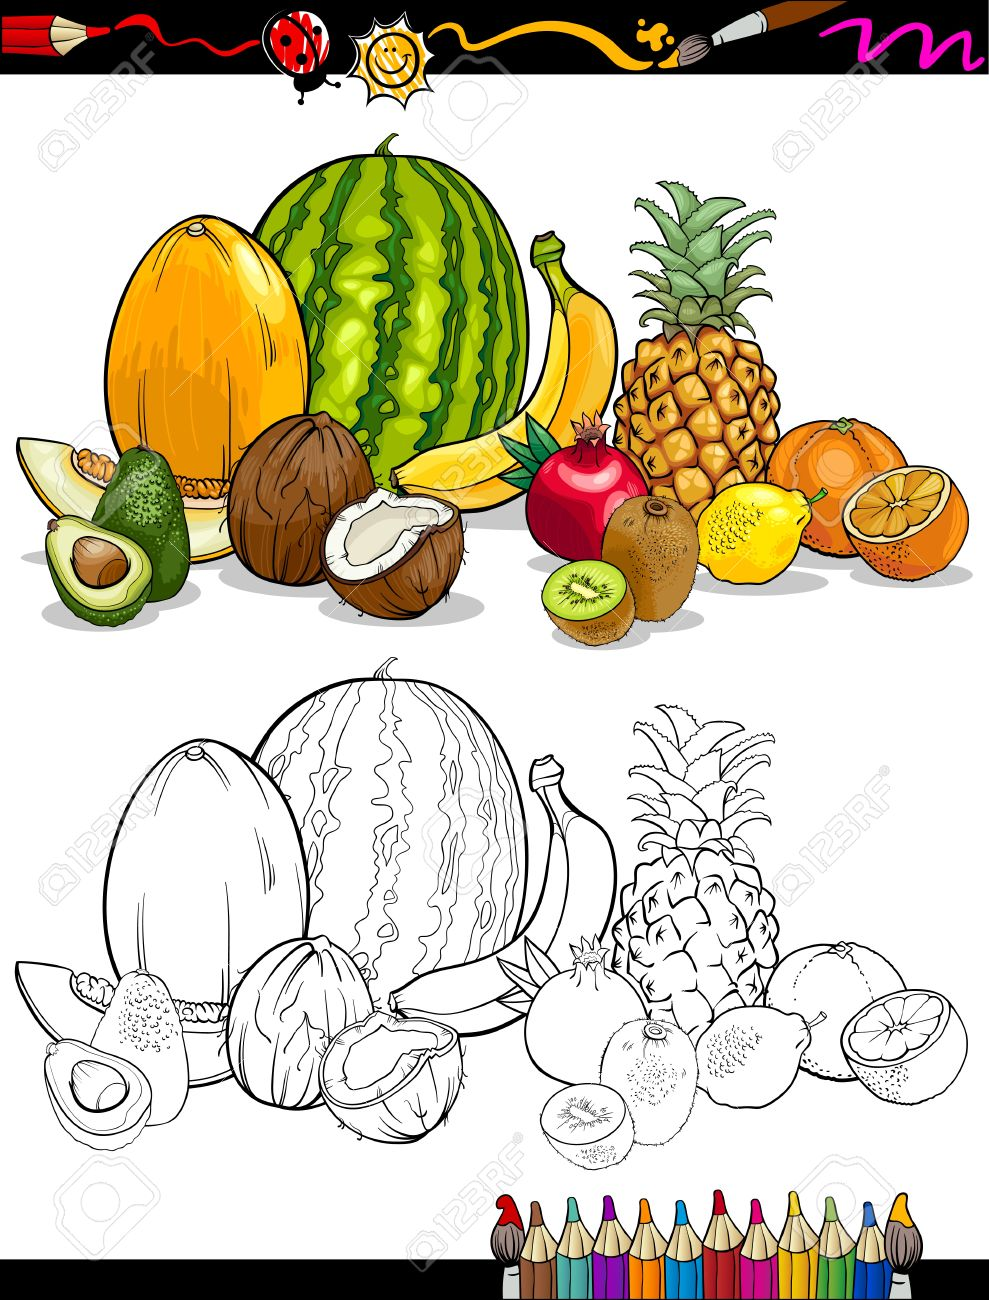 Coloring Book Or Page Cartoon Illustration Of Tropical Fruits Food Group For Children Education Stock Vector